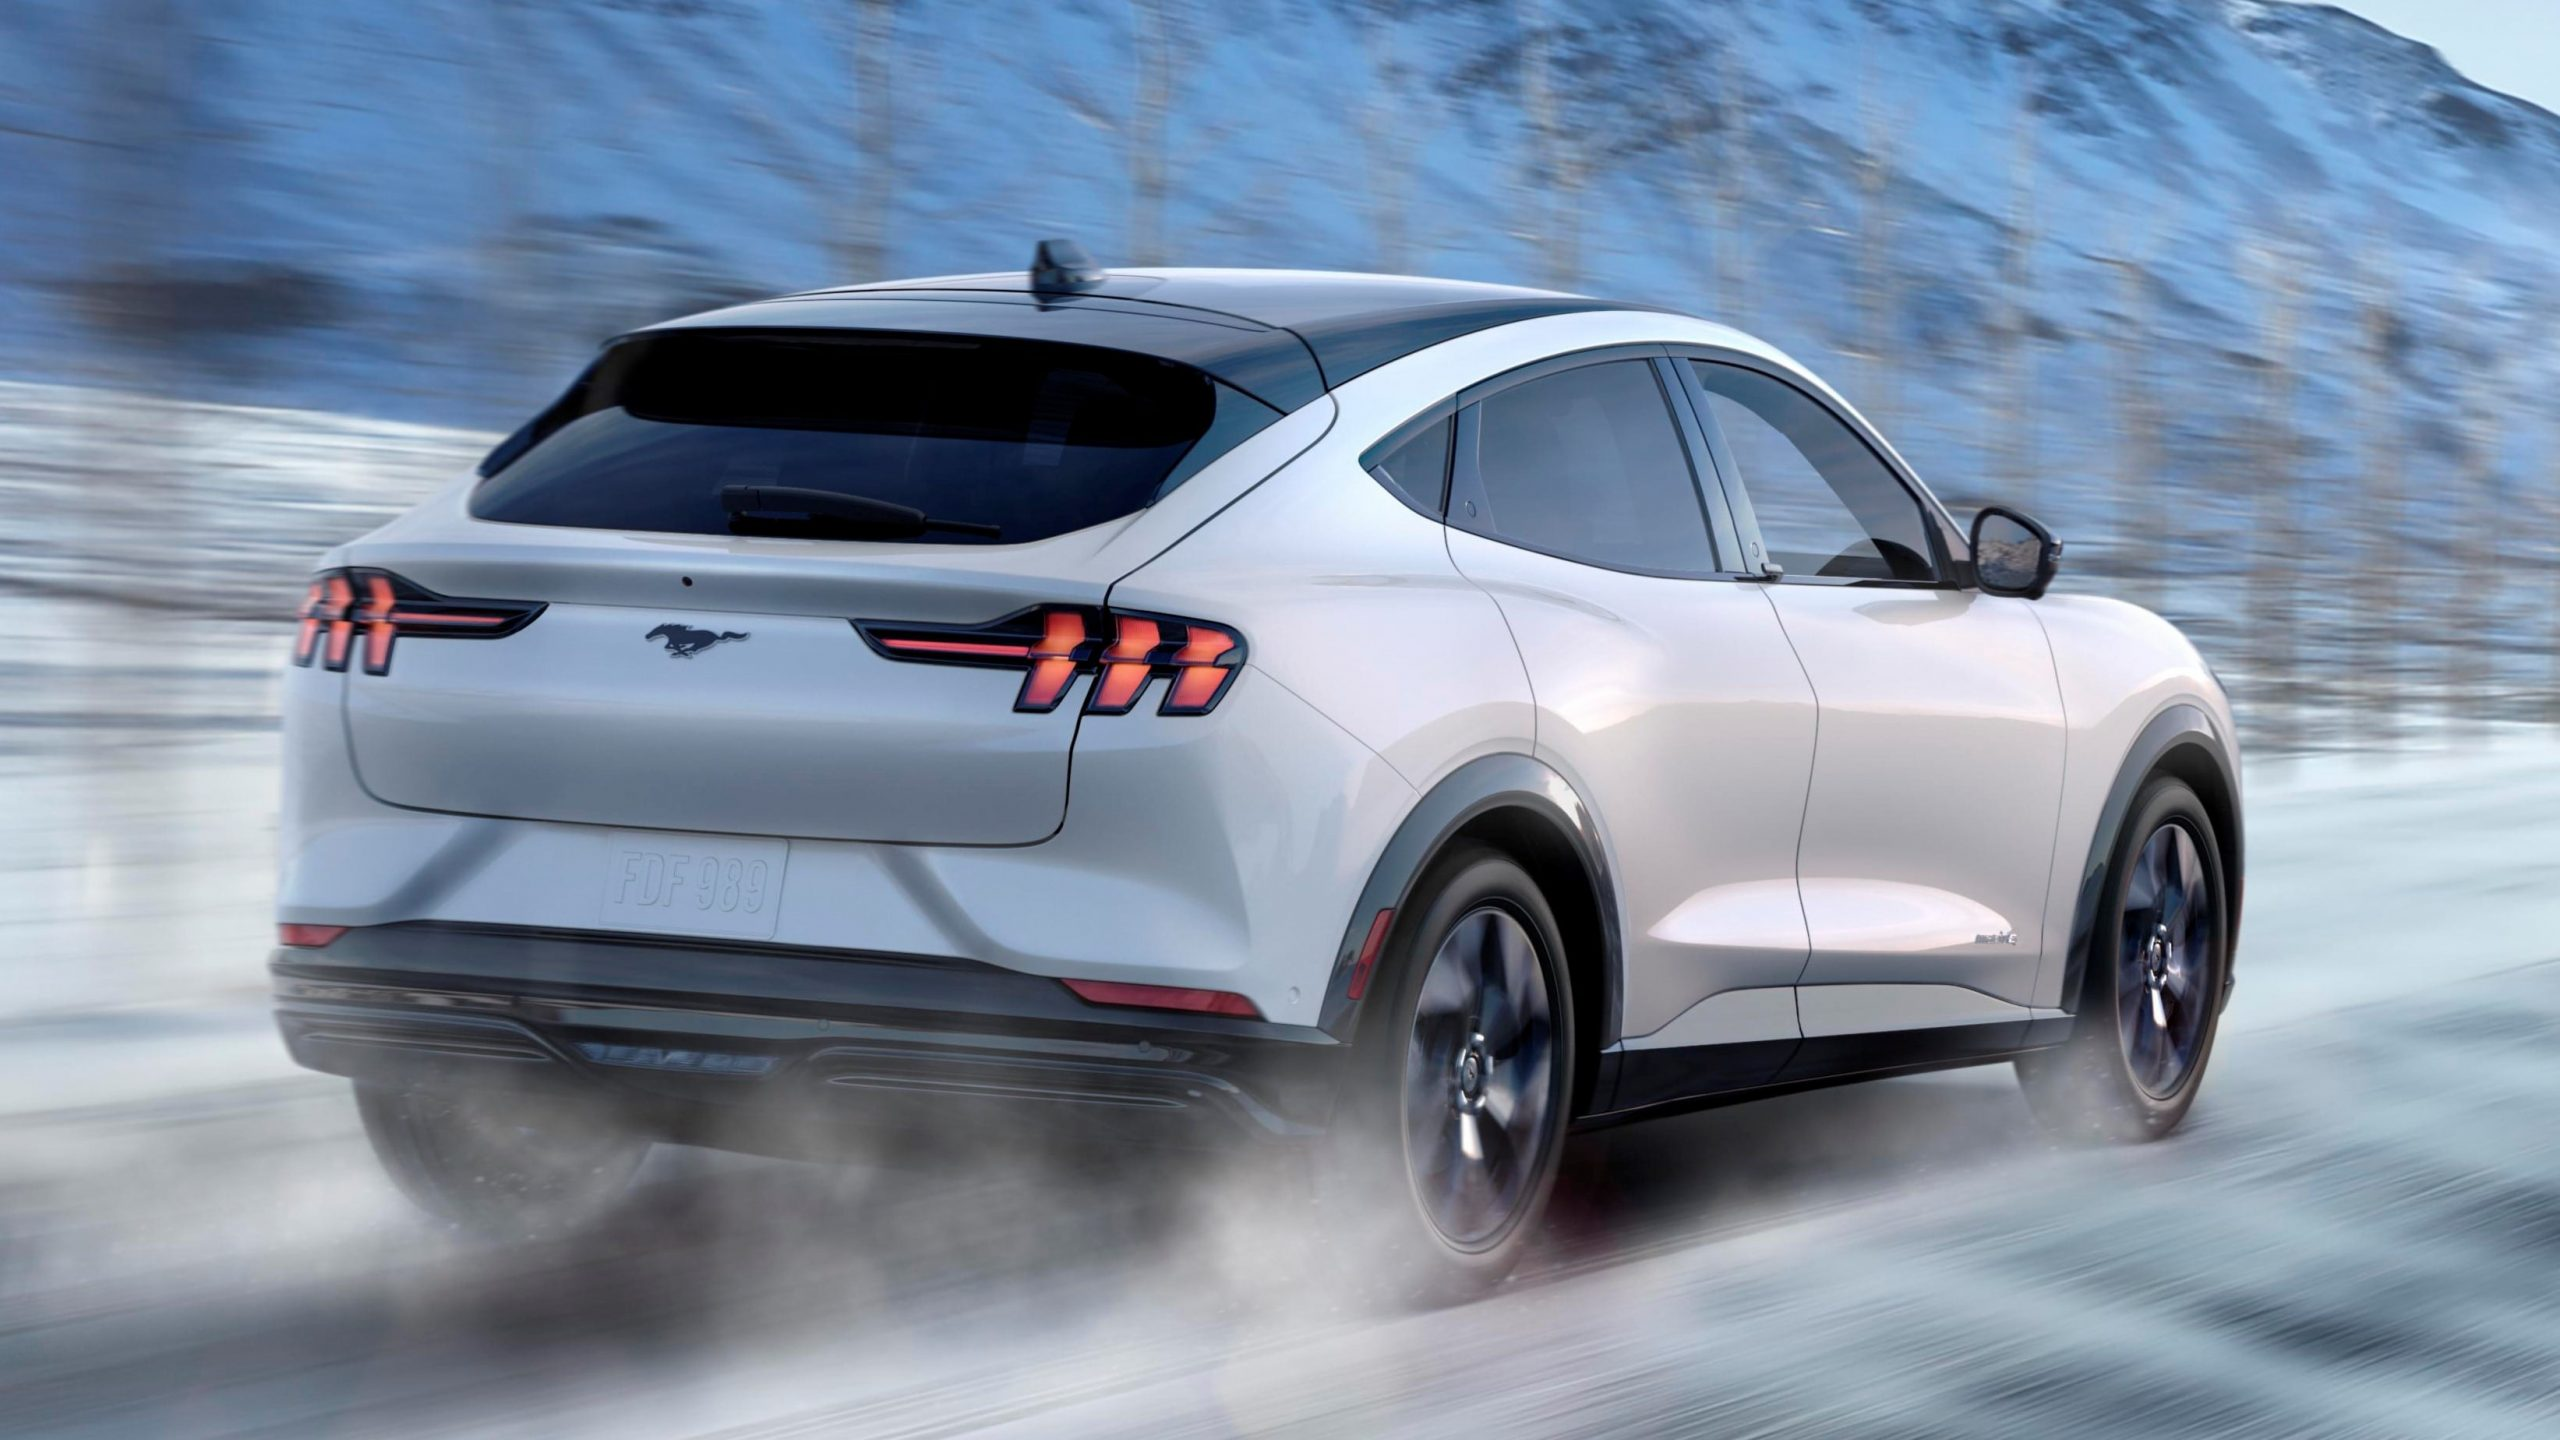 2021 Ford Mustang Mach-E First Look   Kelley Blue Book 2022 Chevy Volt Hp, Incentives, Interior Colors